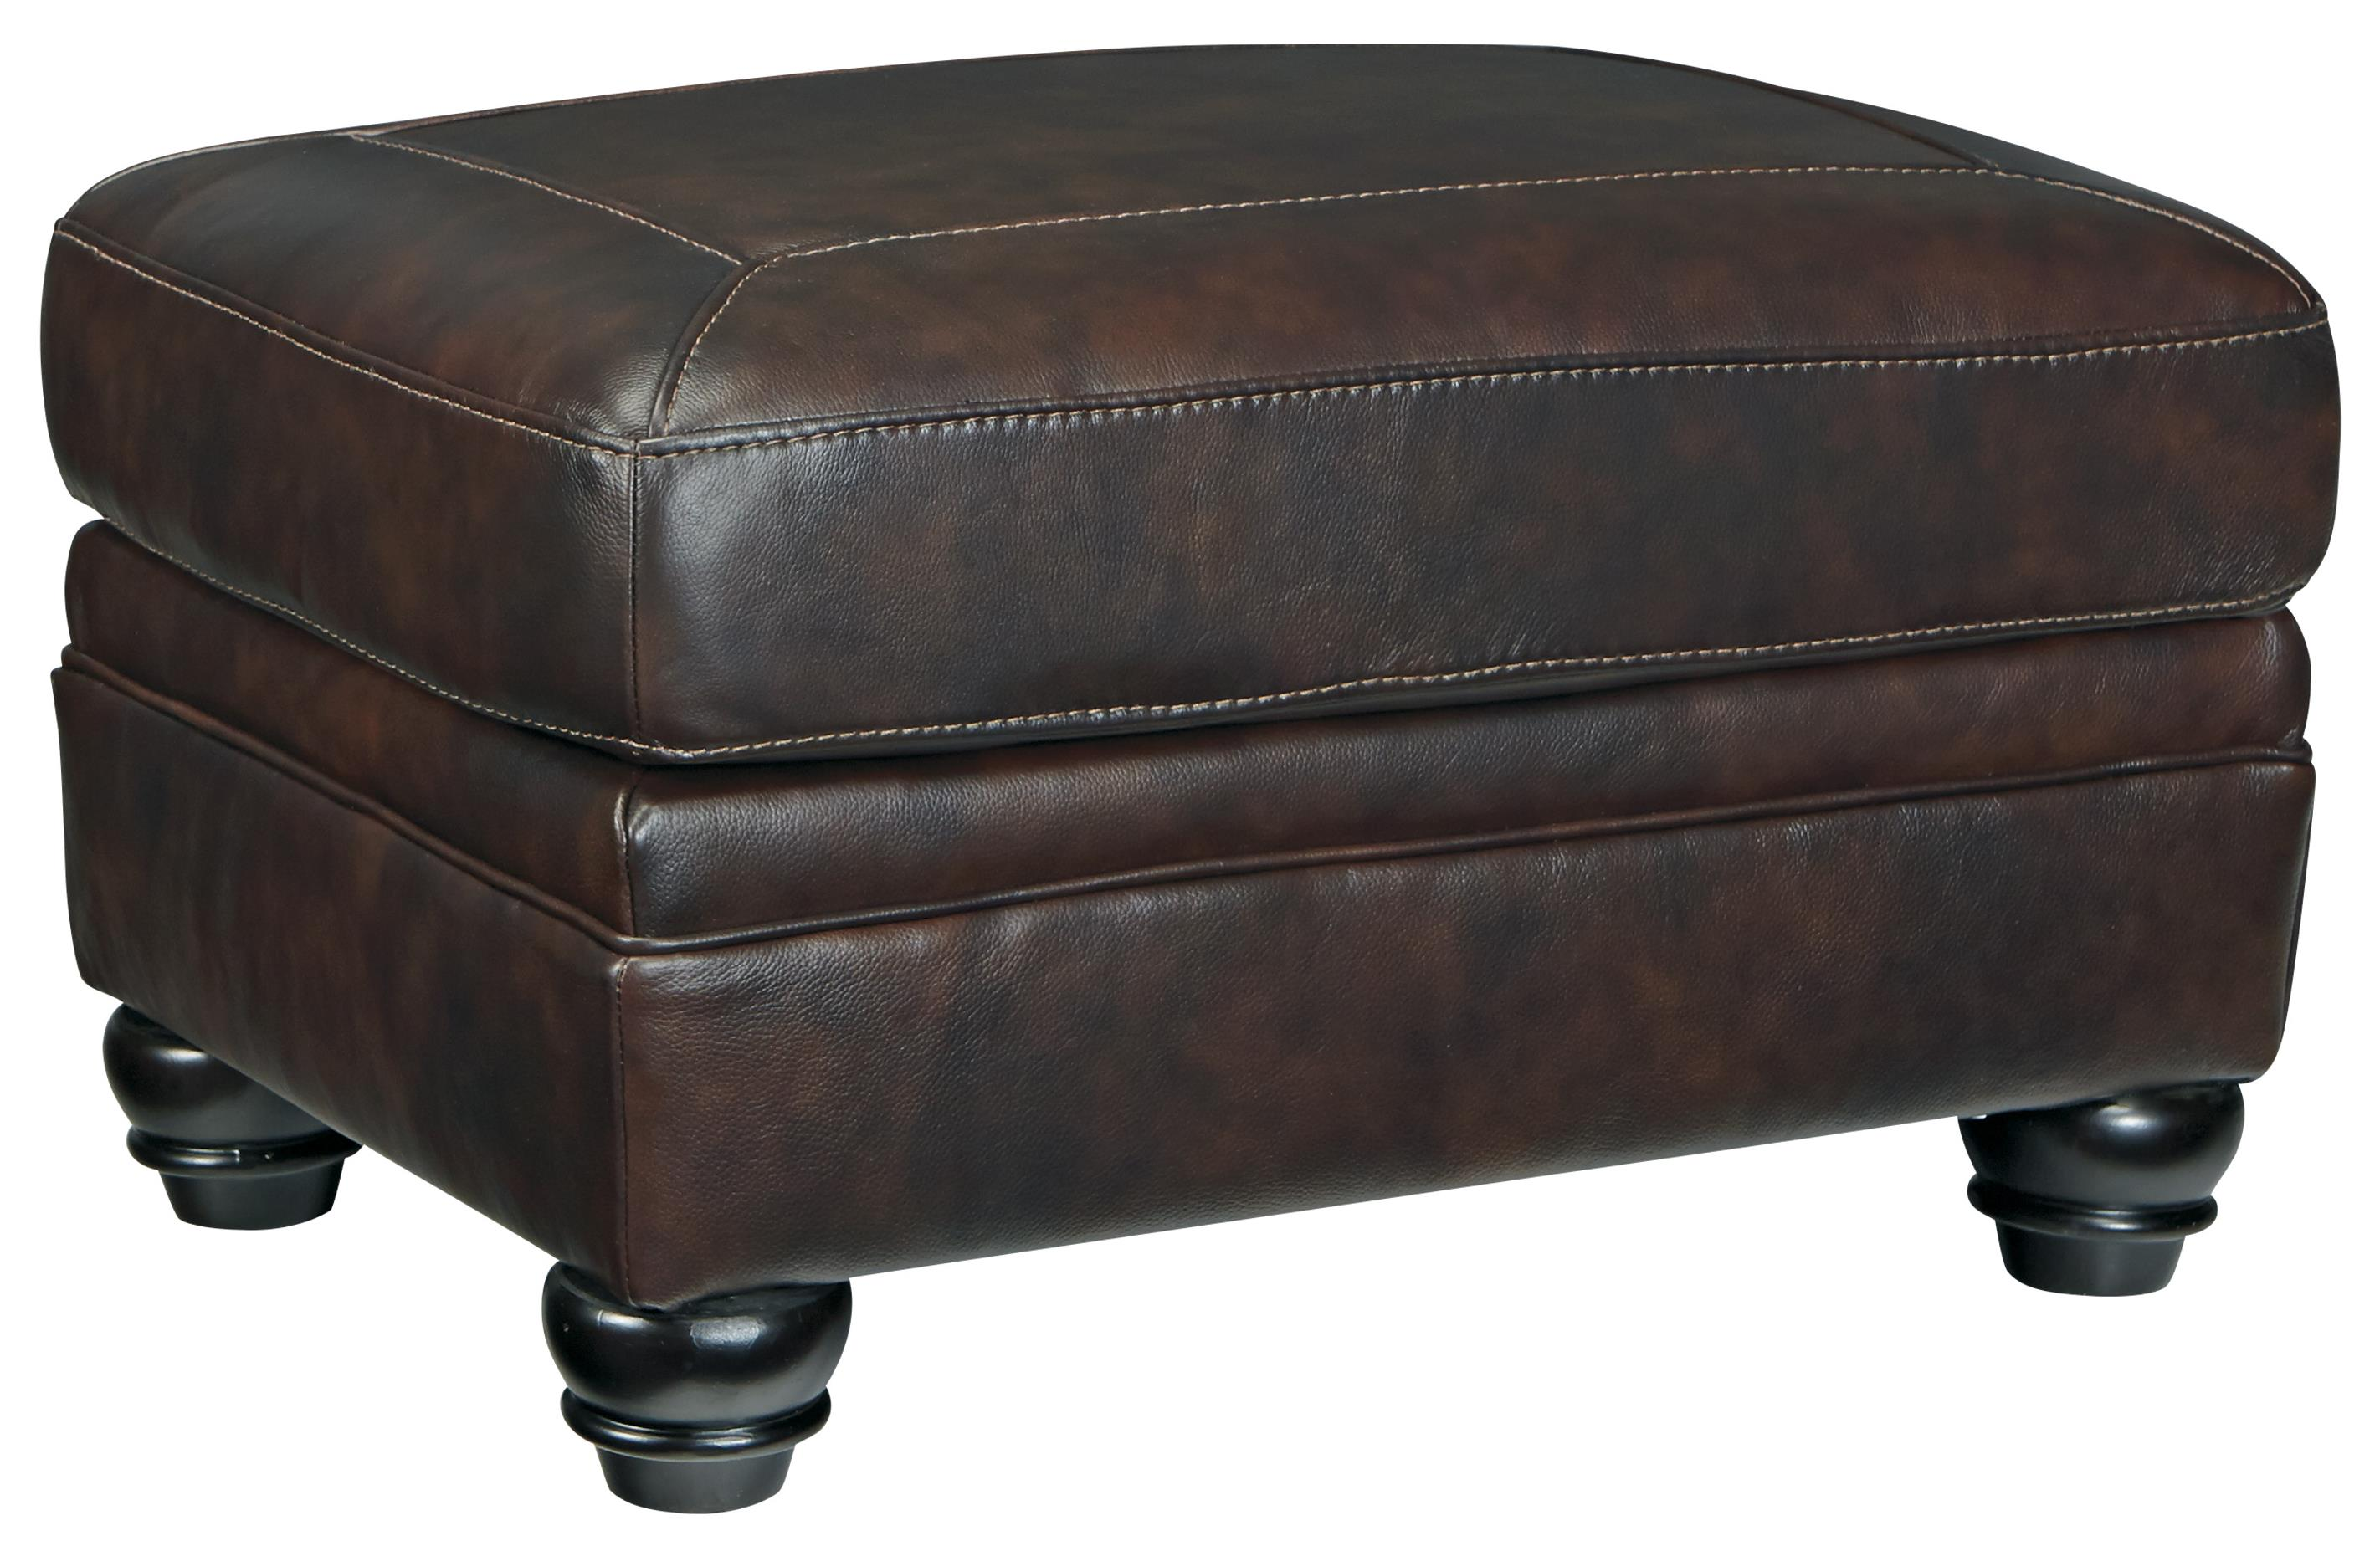 Signature Design by Ashley Bristan Ottoman - Item Number: 8220214